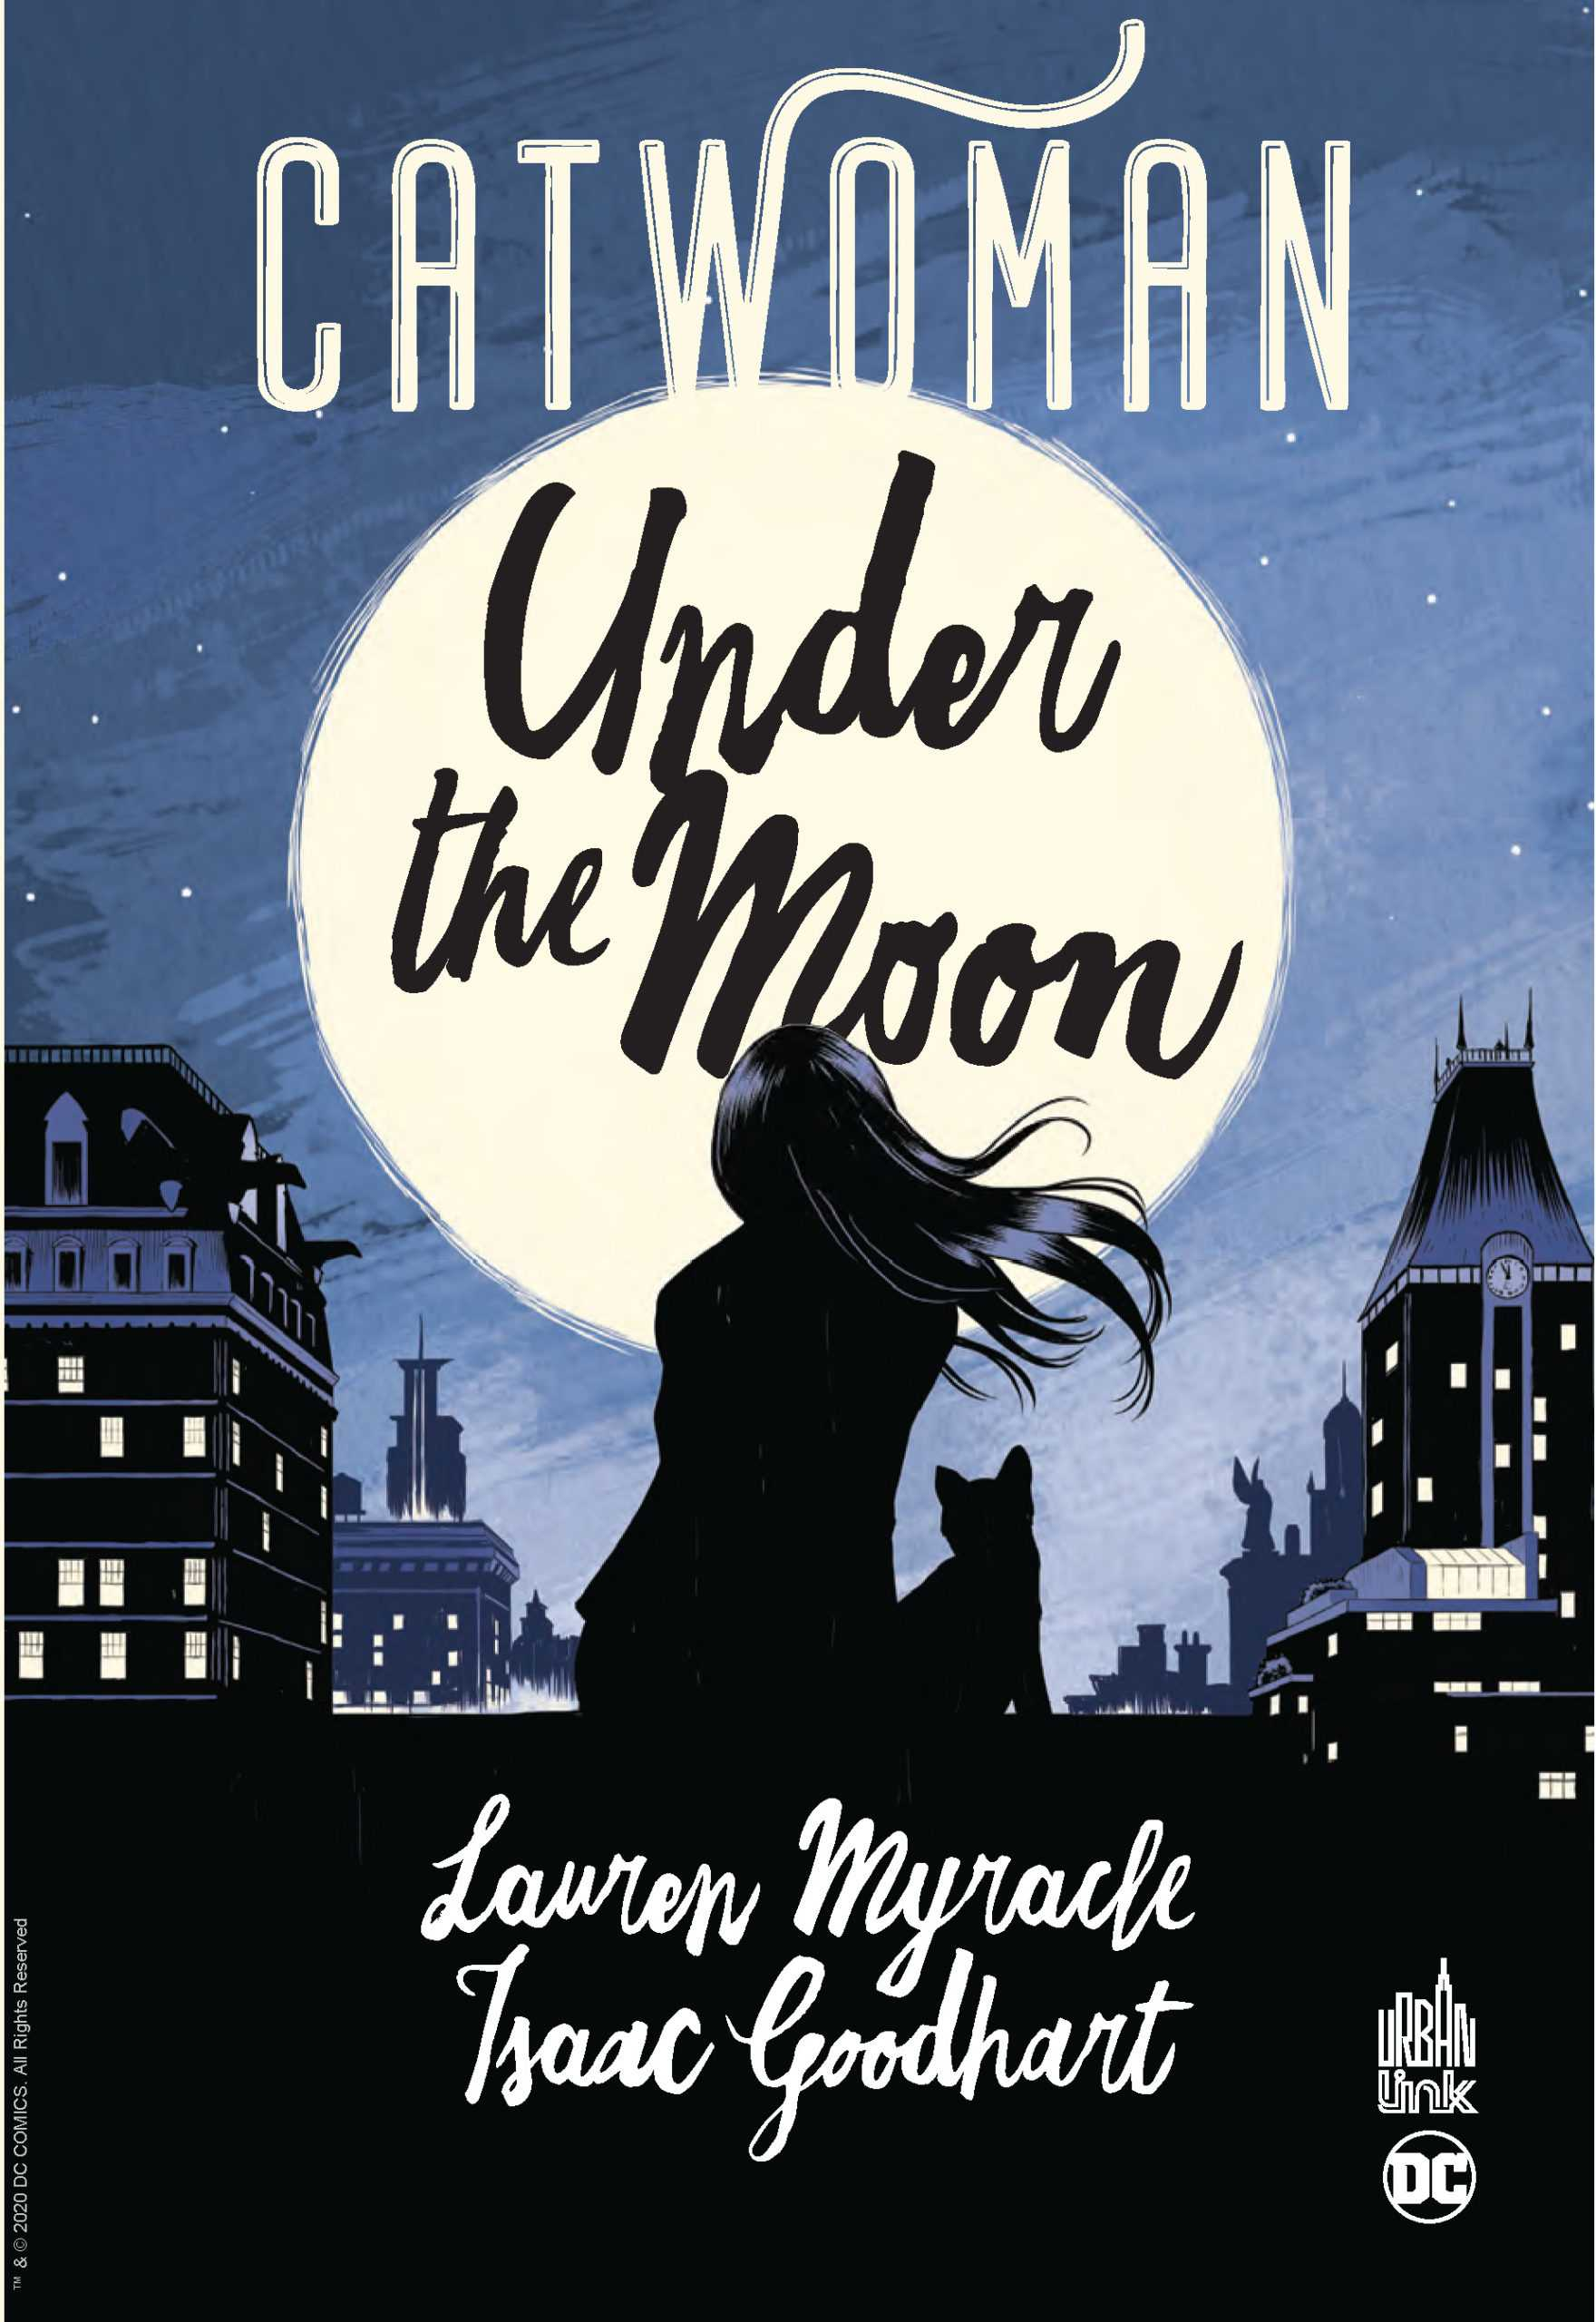 Catwoman Under the moon, un monde de chien